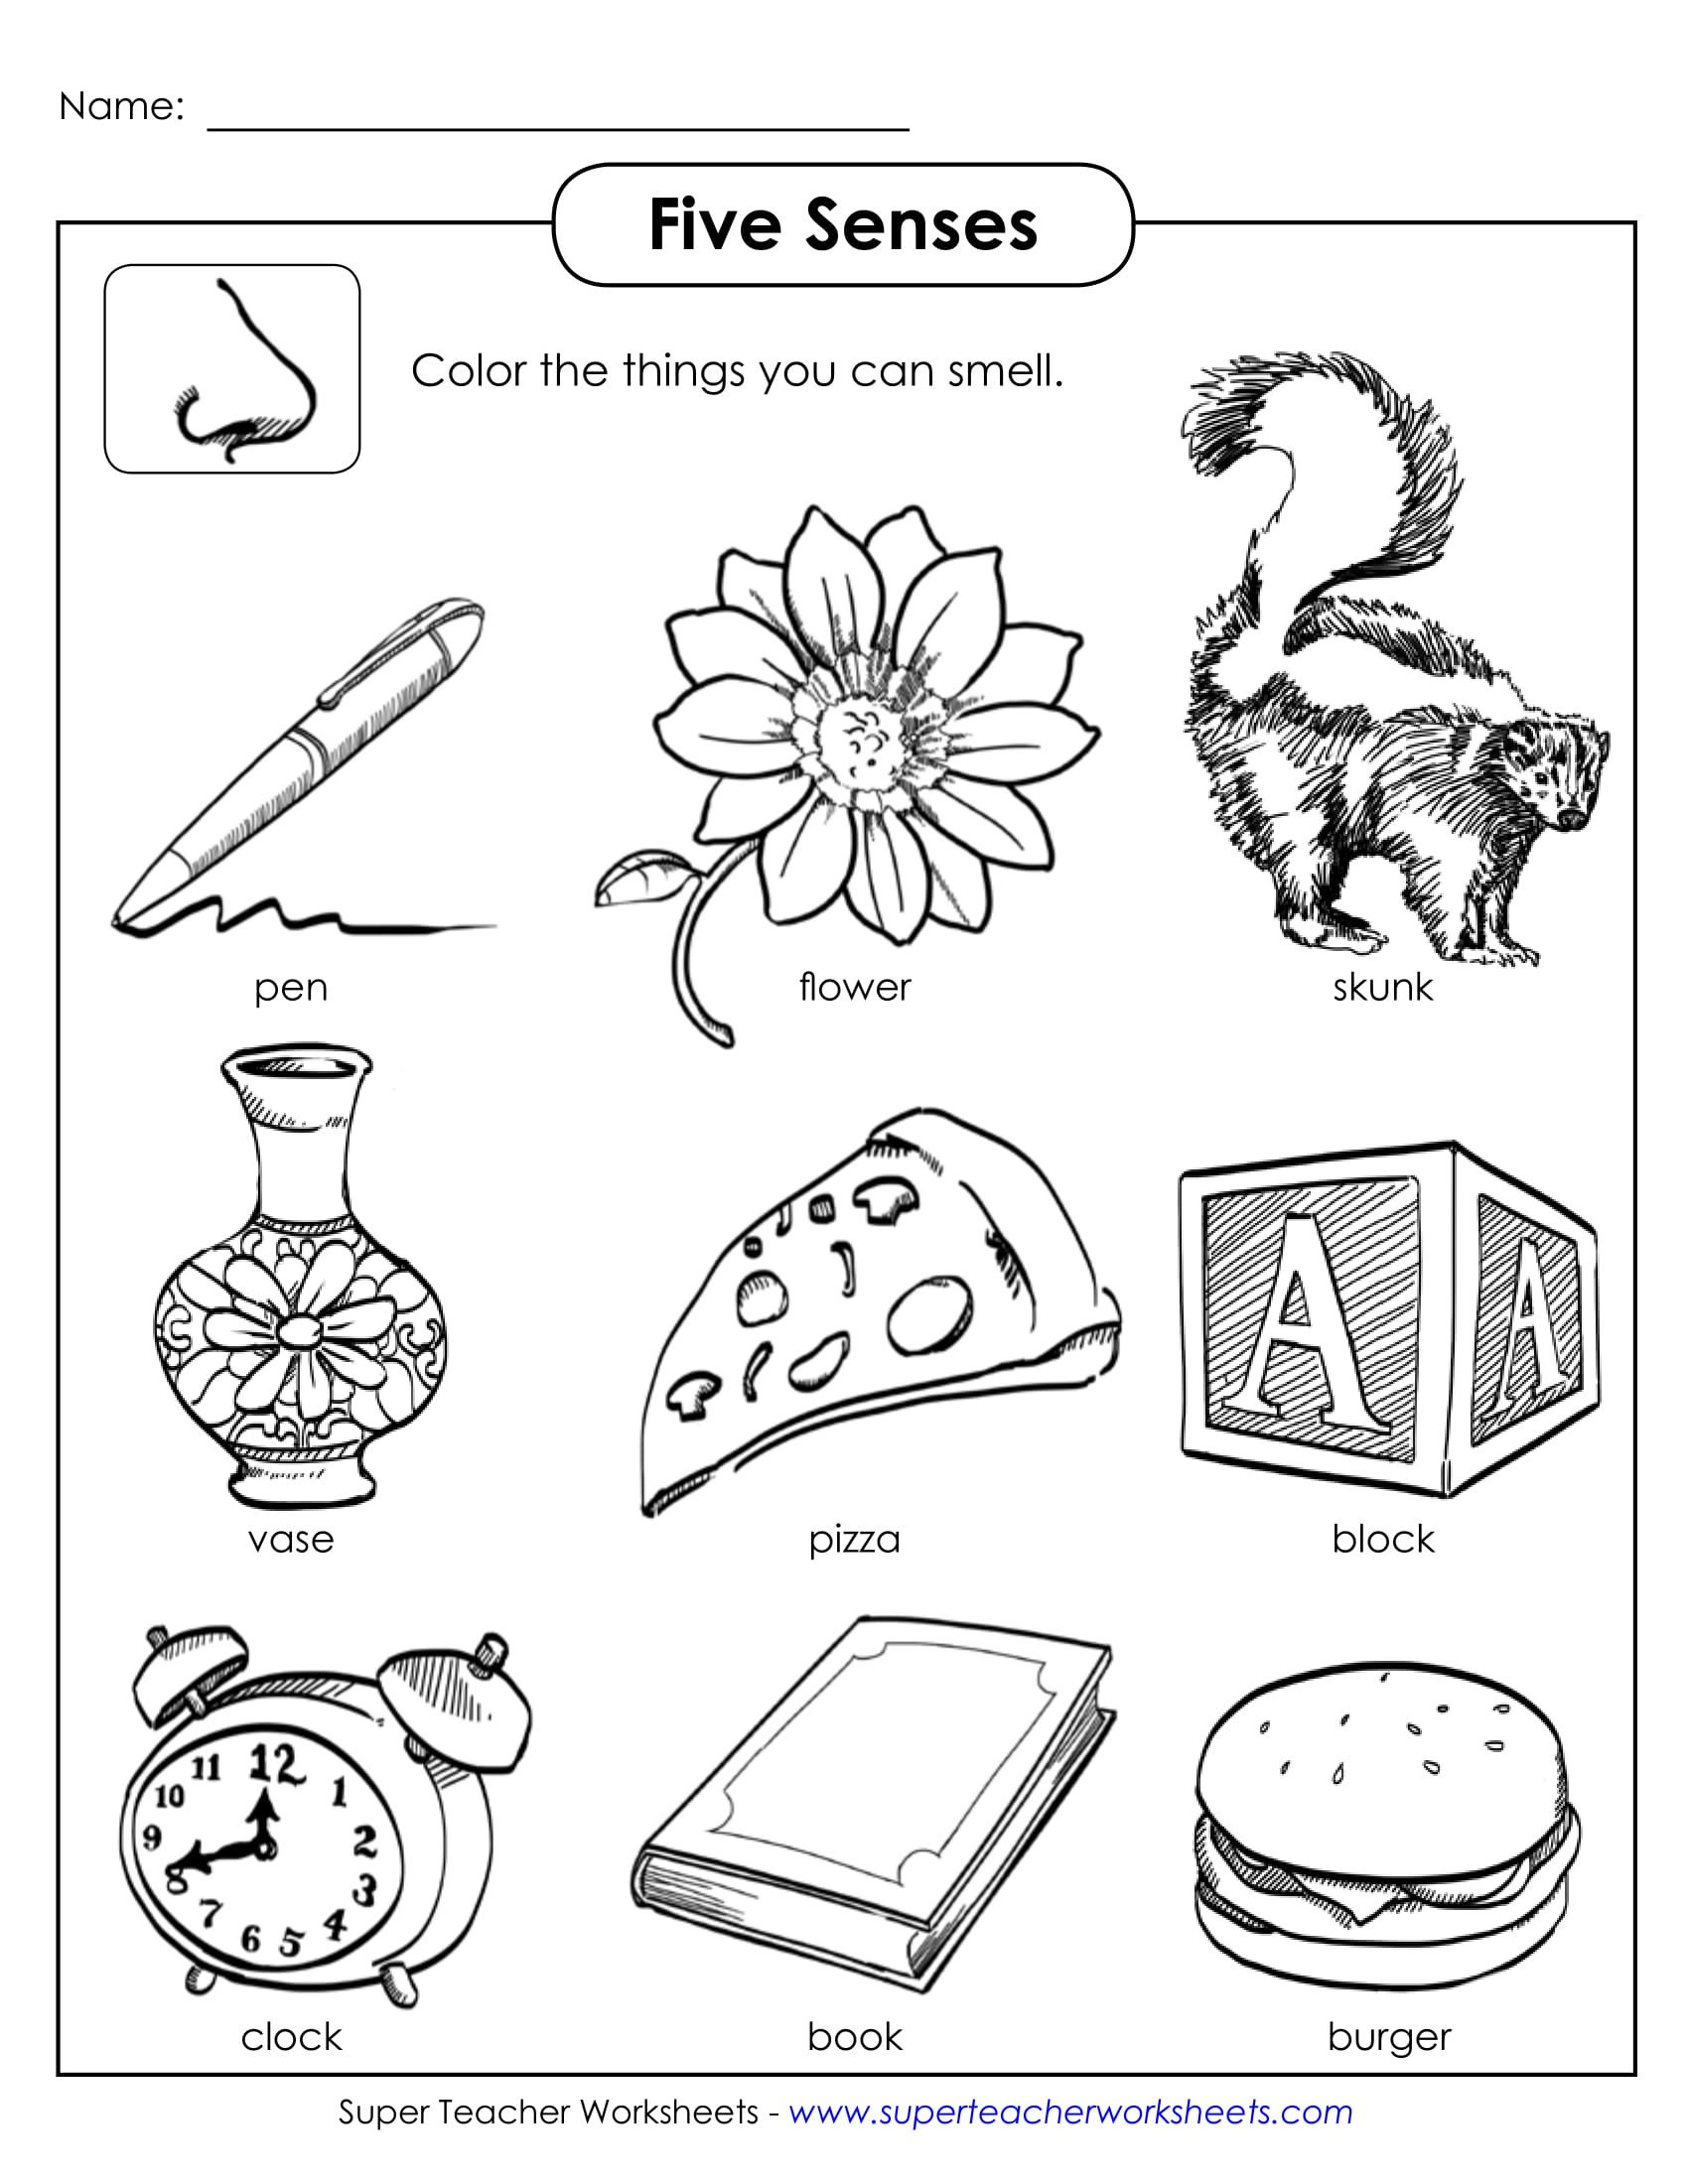 5 Senses Kindergarten Worksheets Hiddenfashionhistory Free and Roll Worksheets Senses for